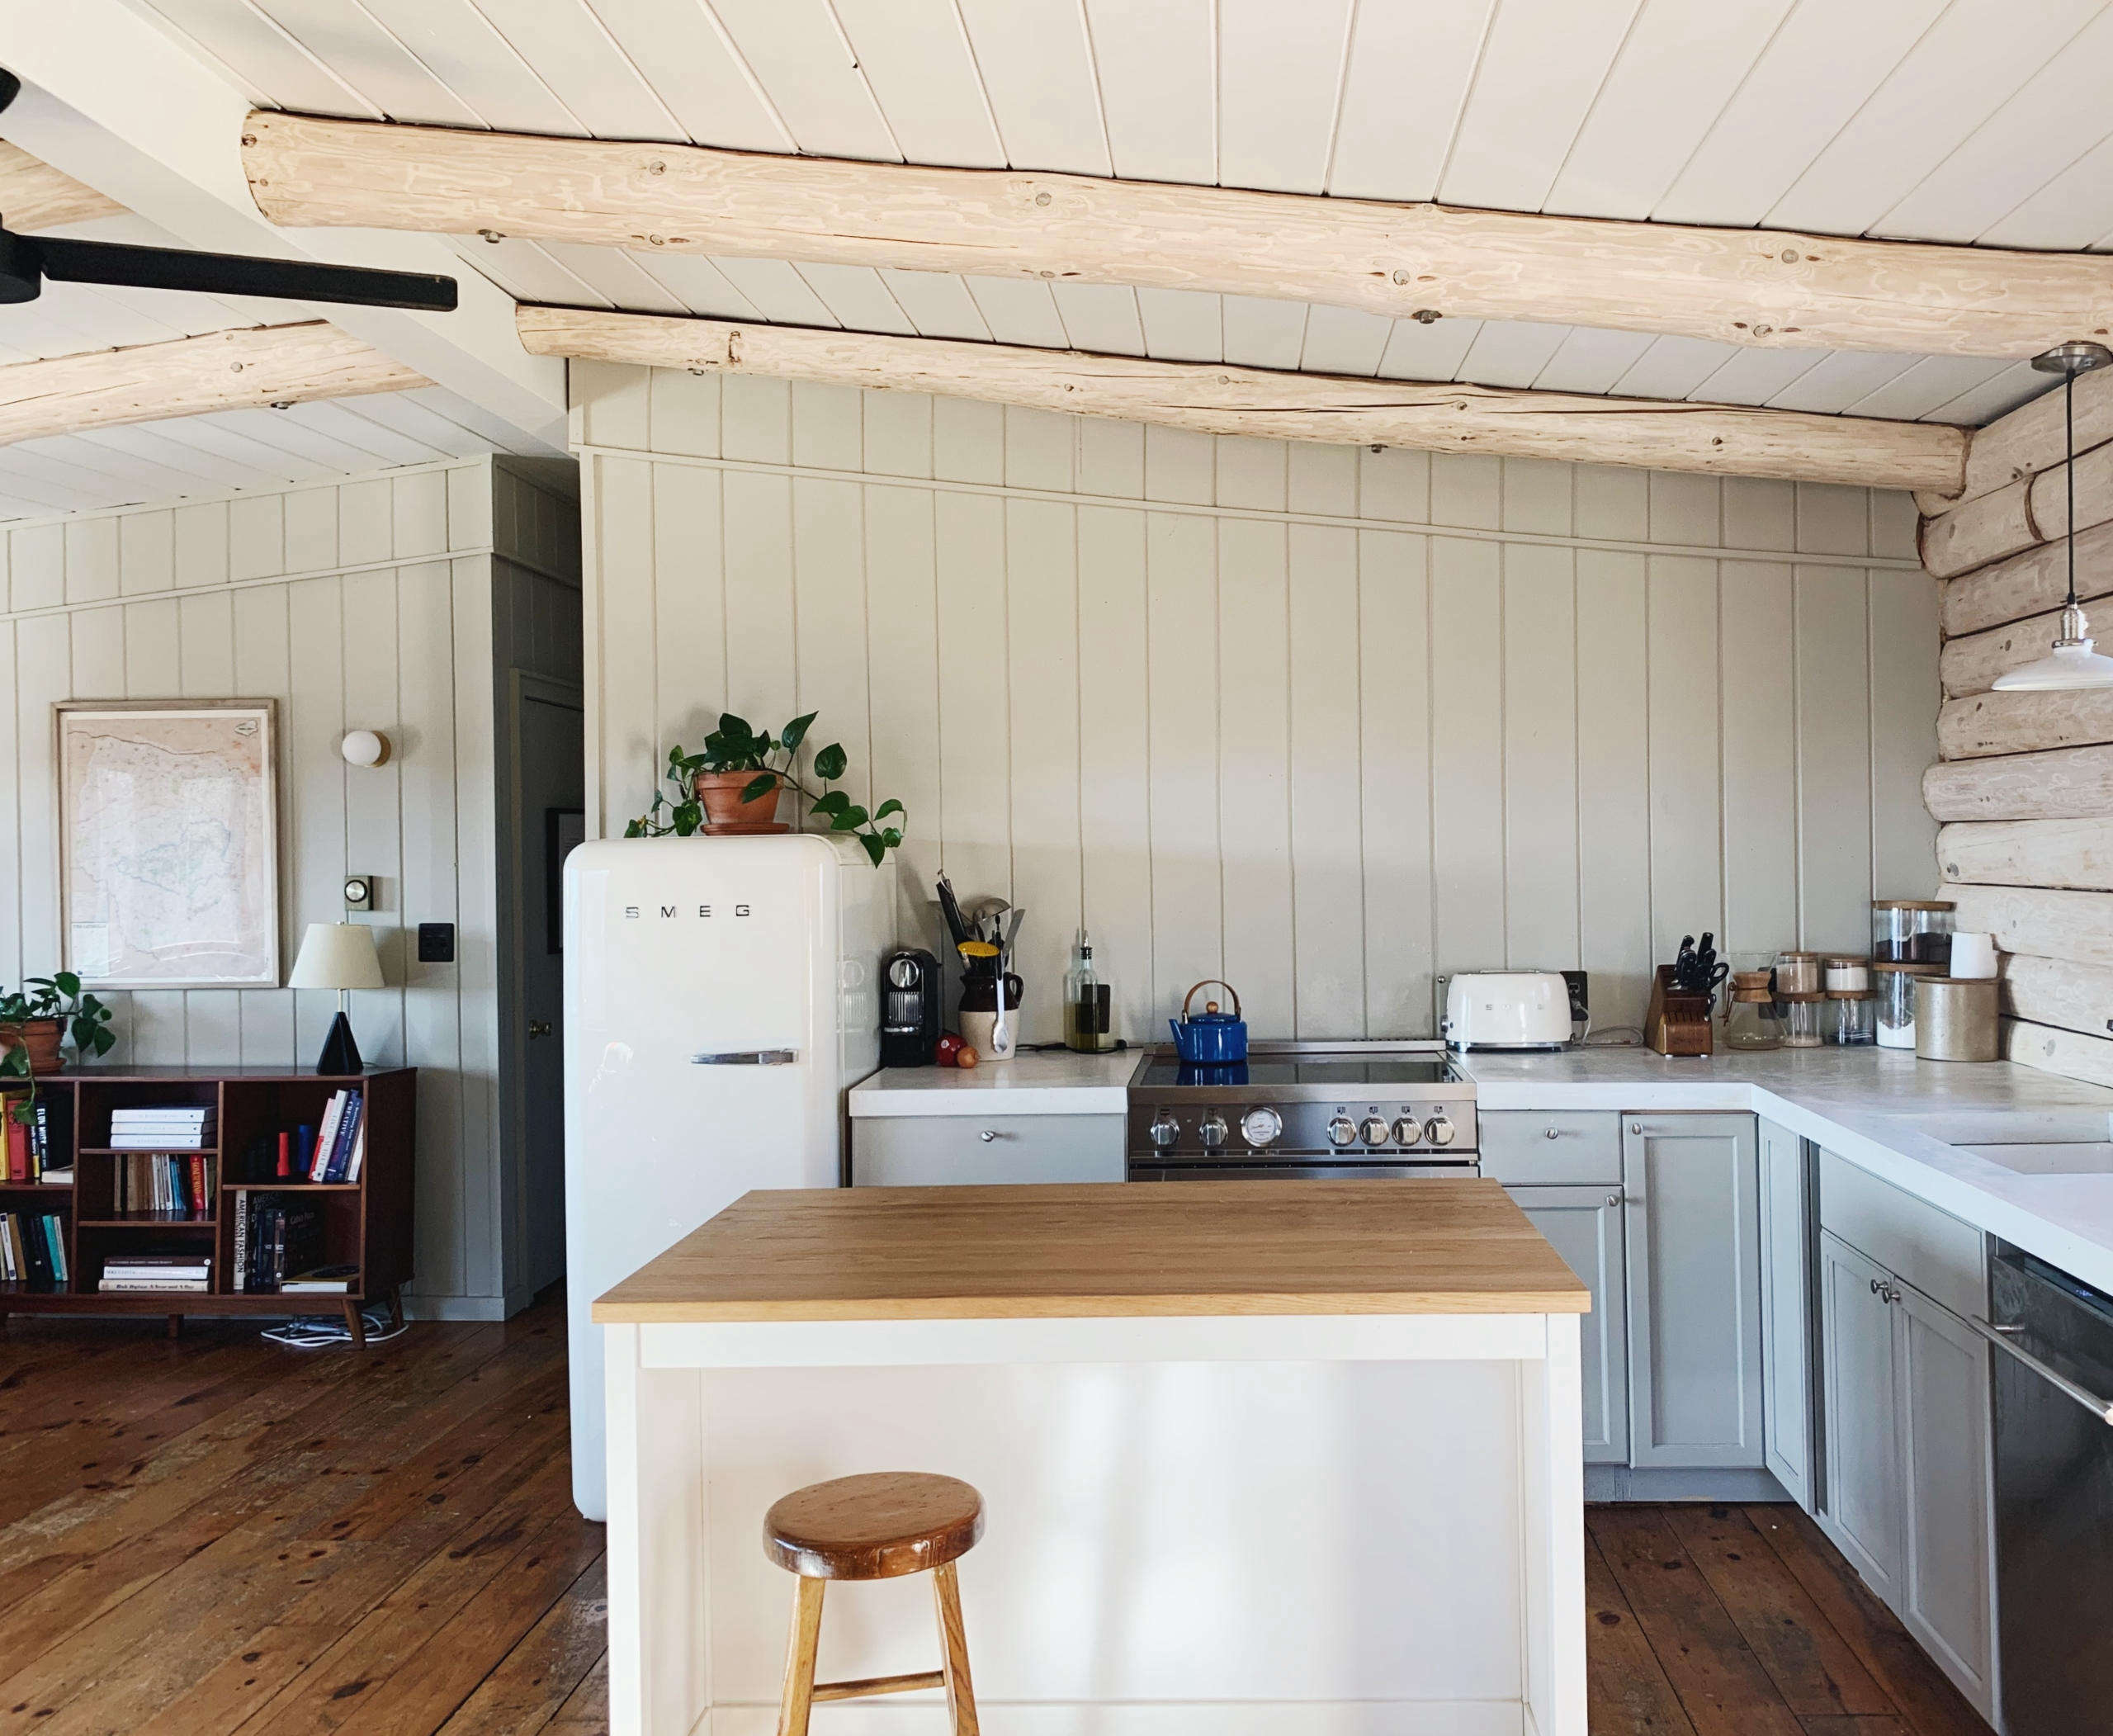 Before and After: A Couple's DIY Cabin Upstate, Redone During Quarantine - Remodelista